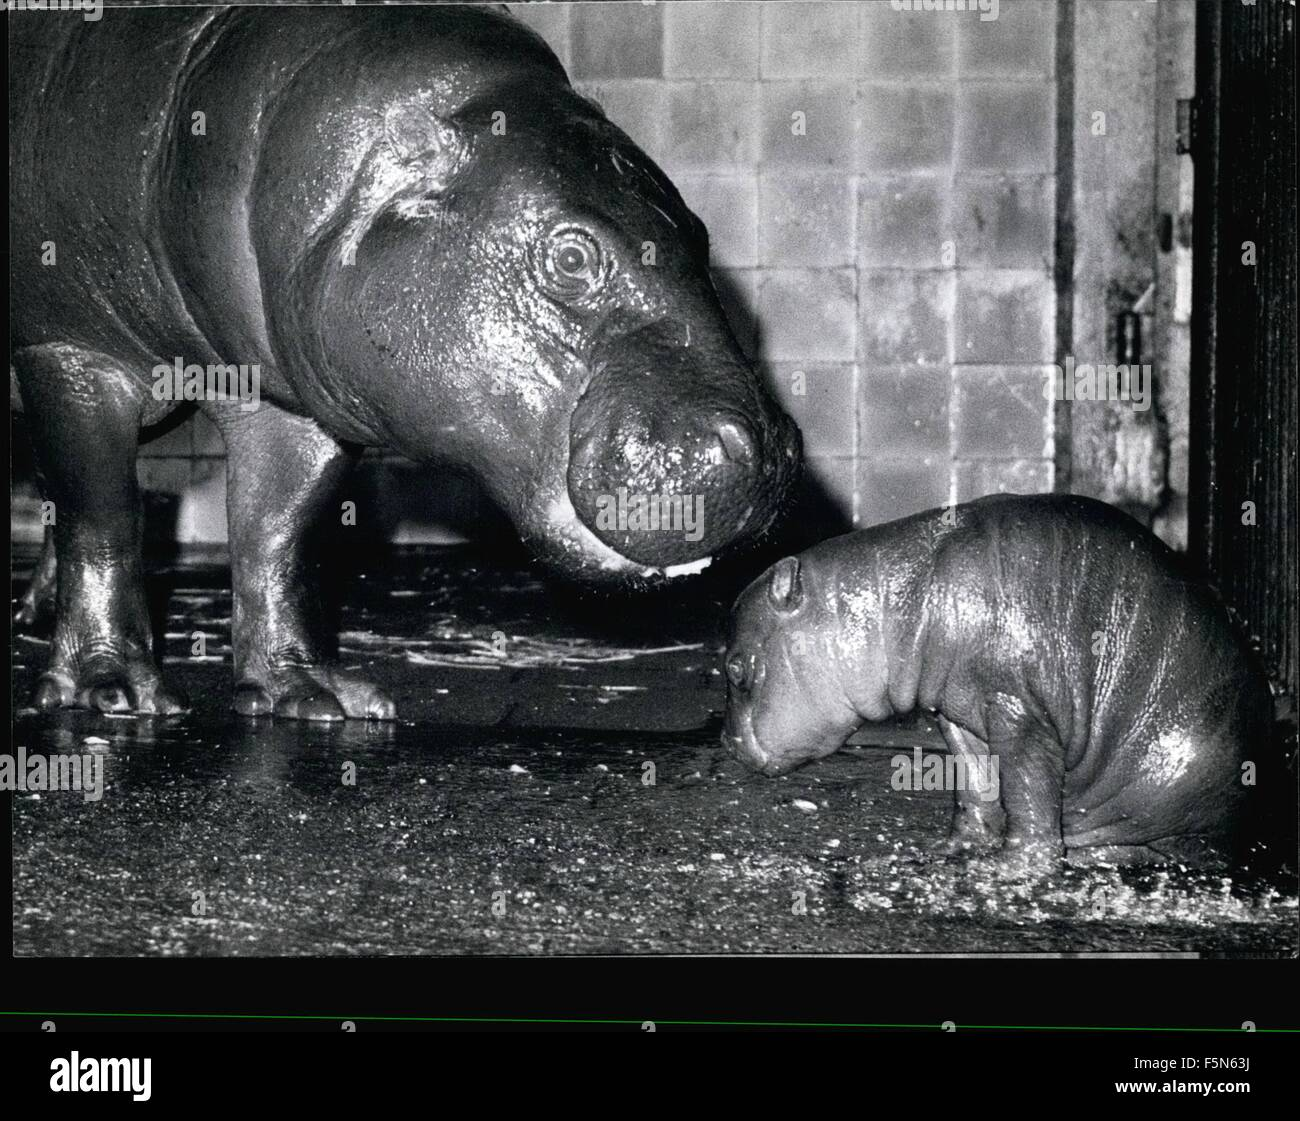 1979 - Young Dwarf-Hippopotamus At The Munich: It looks rather contrite, the new born hippopotamus at the Munich - Stock Image